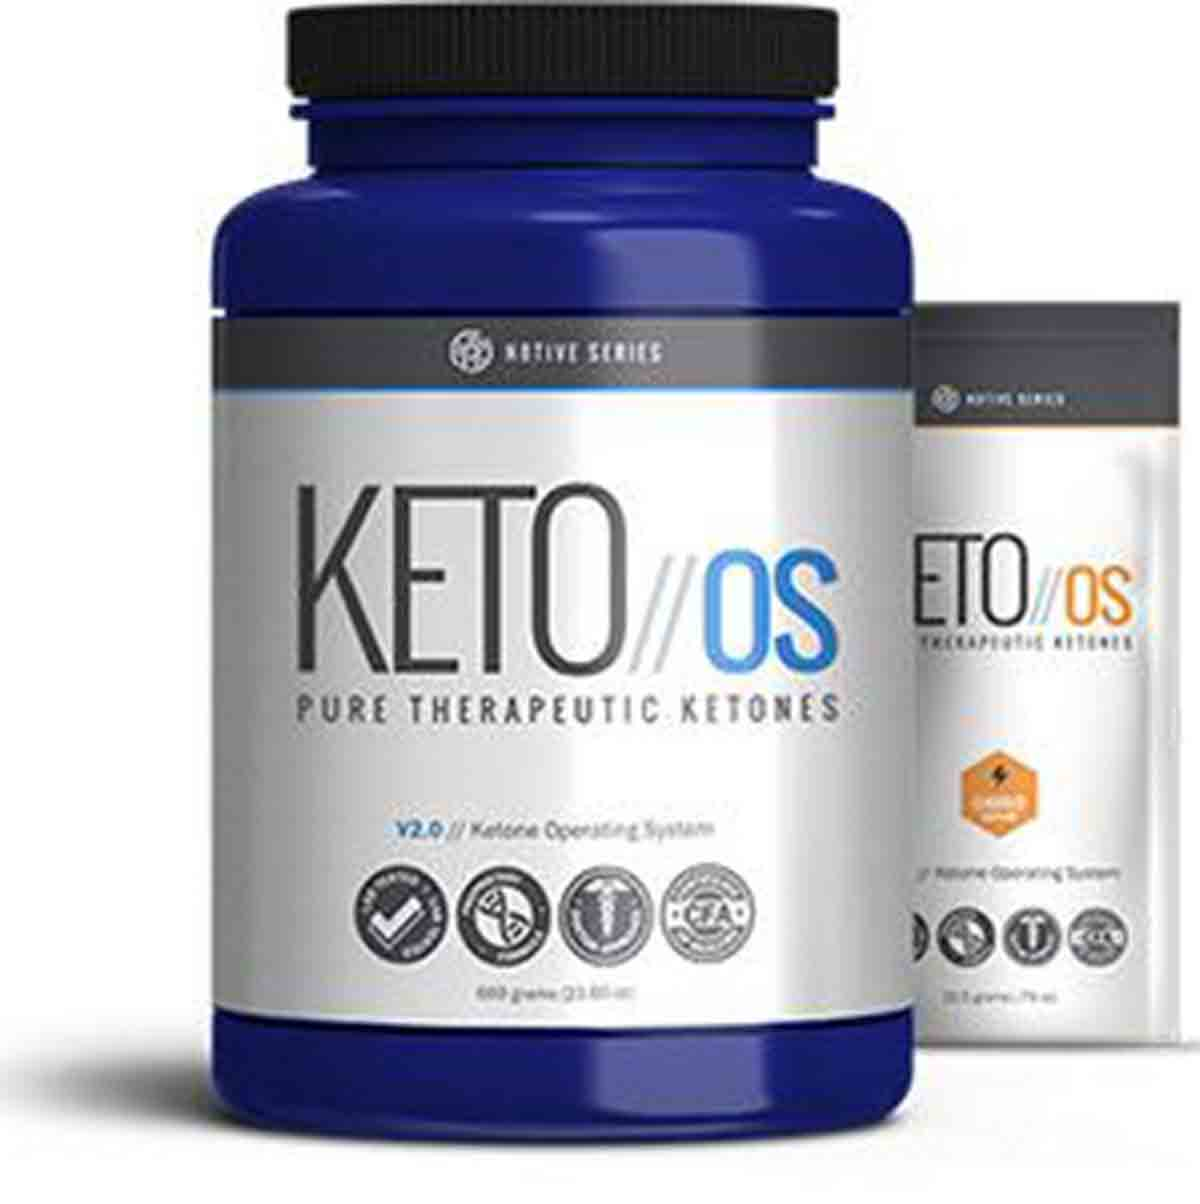 Keto Diet Review: Is This Popular Diet Worth Trying?